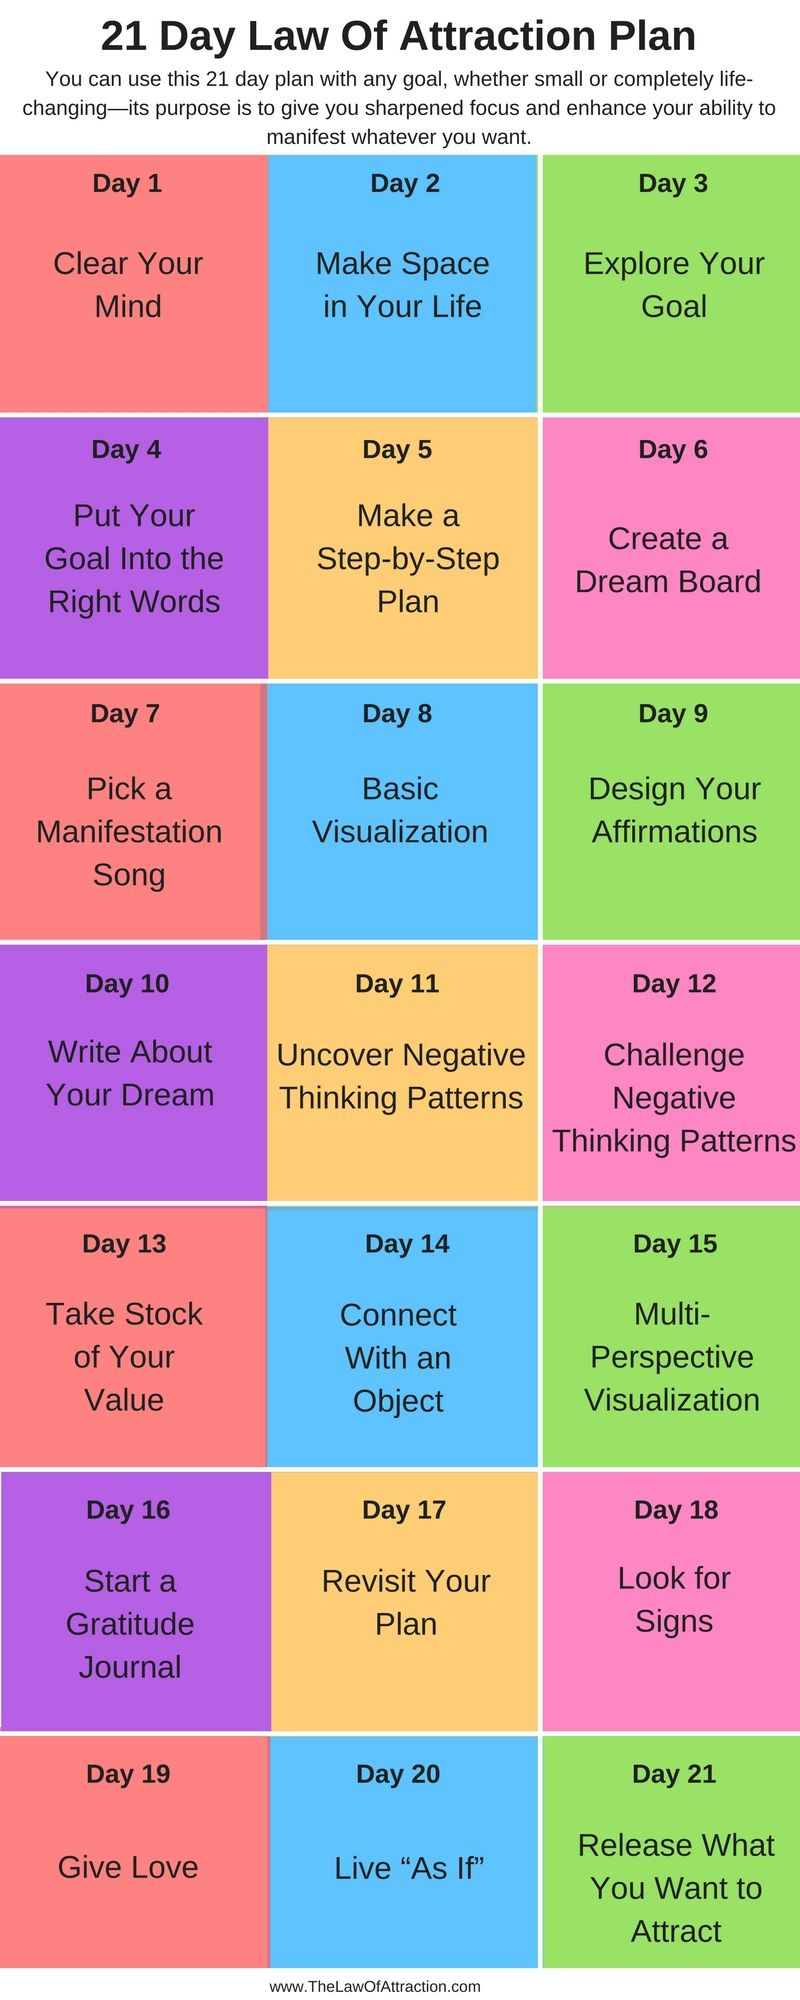 21 Day Challenge The Law Of Attraction Plan For Manifesting Happiness Law Of Attraction Law Of Attraction Money Manifestation Miracle